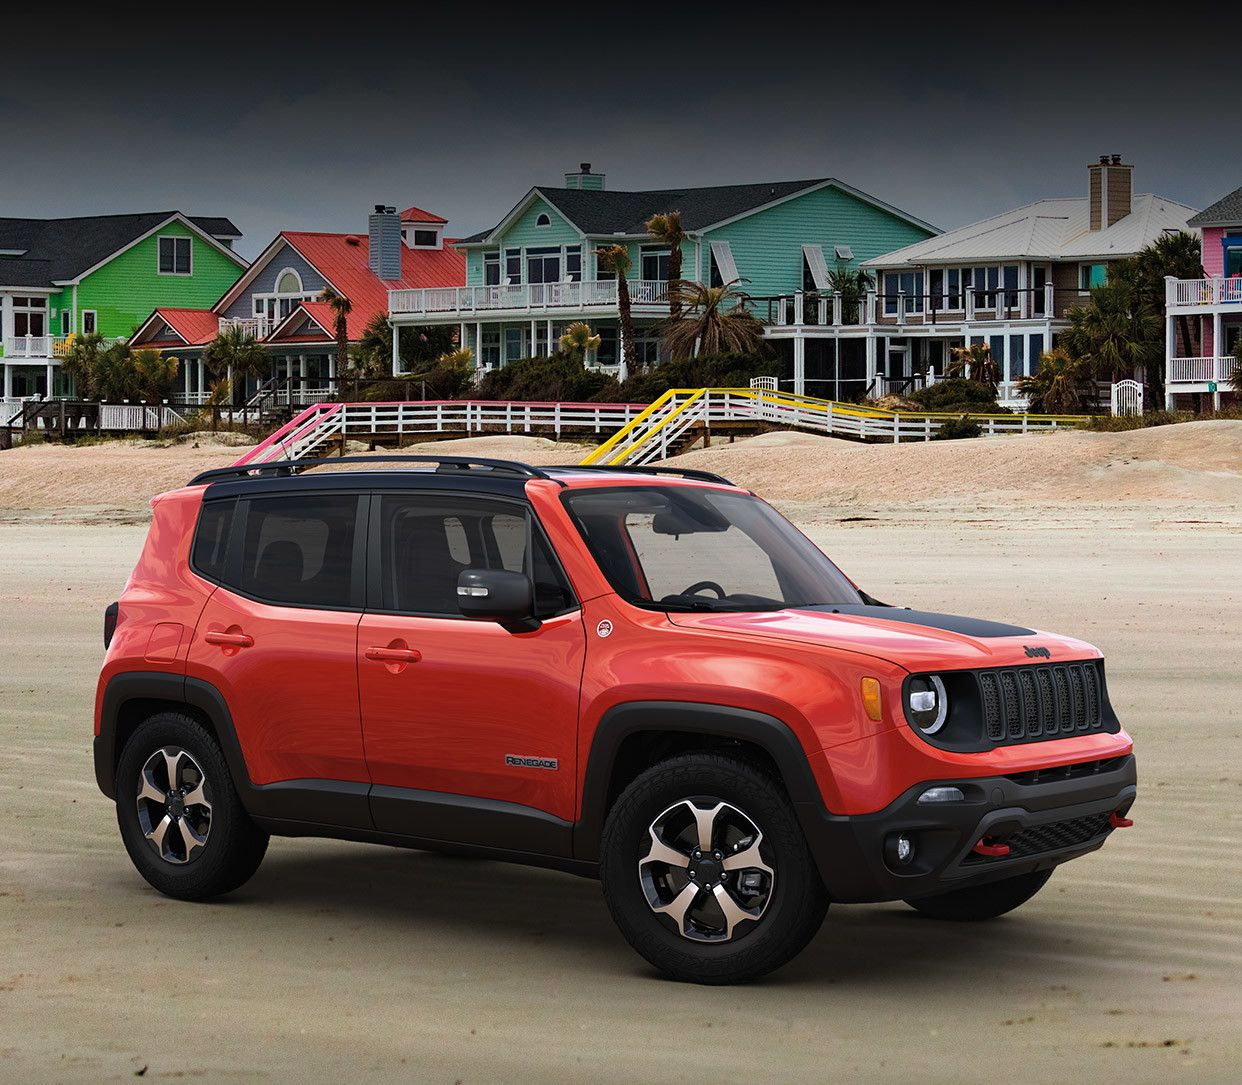 78 The 2020 Jeep Renegade Release Date And Concept In 2020 Jeep